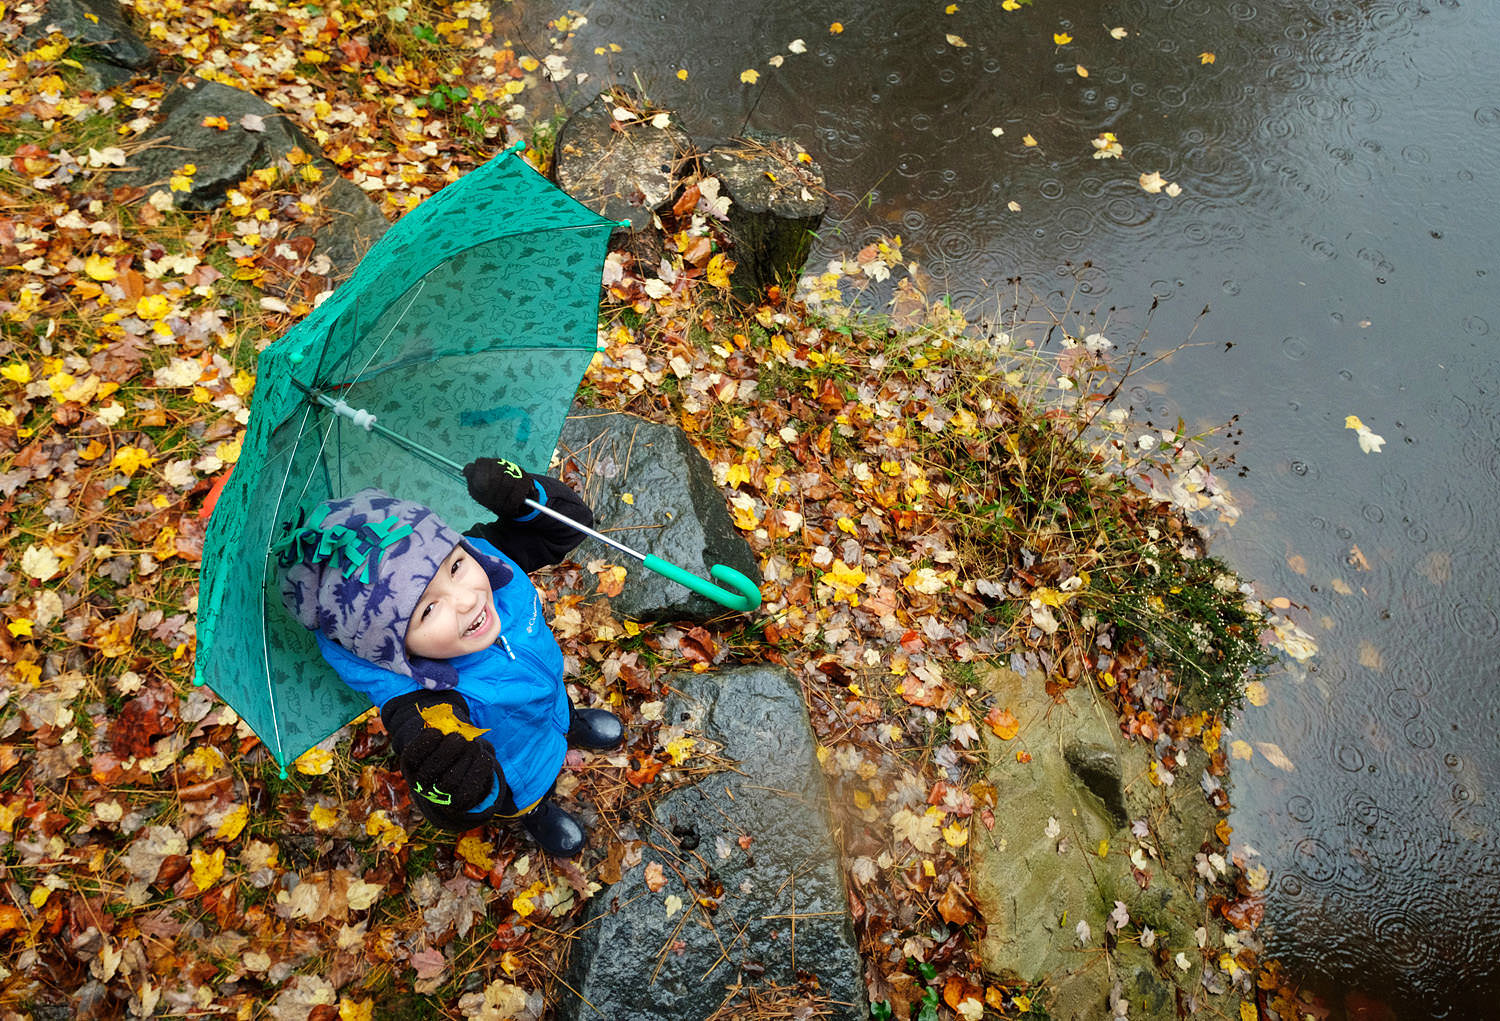 Boy with umbrella and fall leaves in the rain